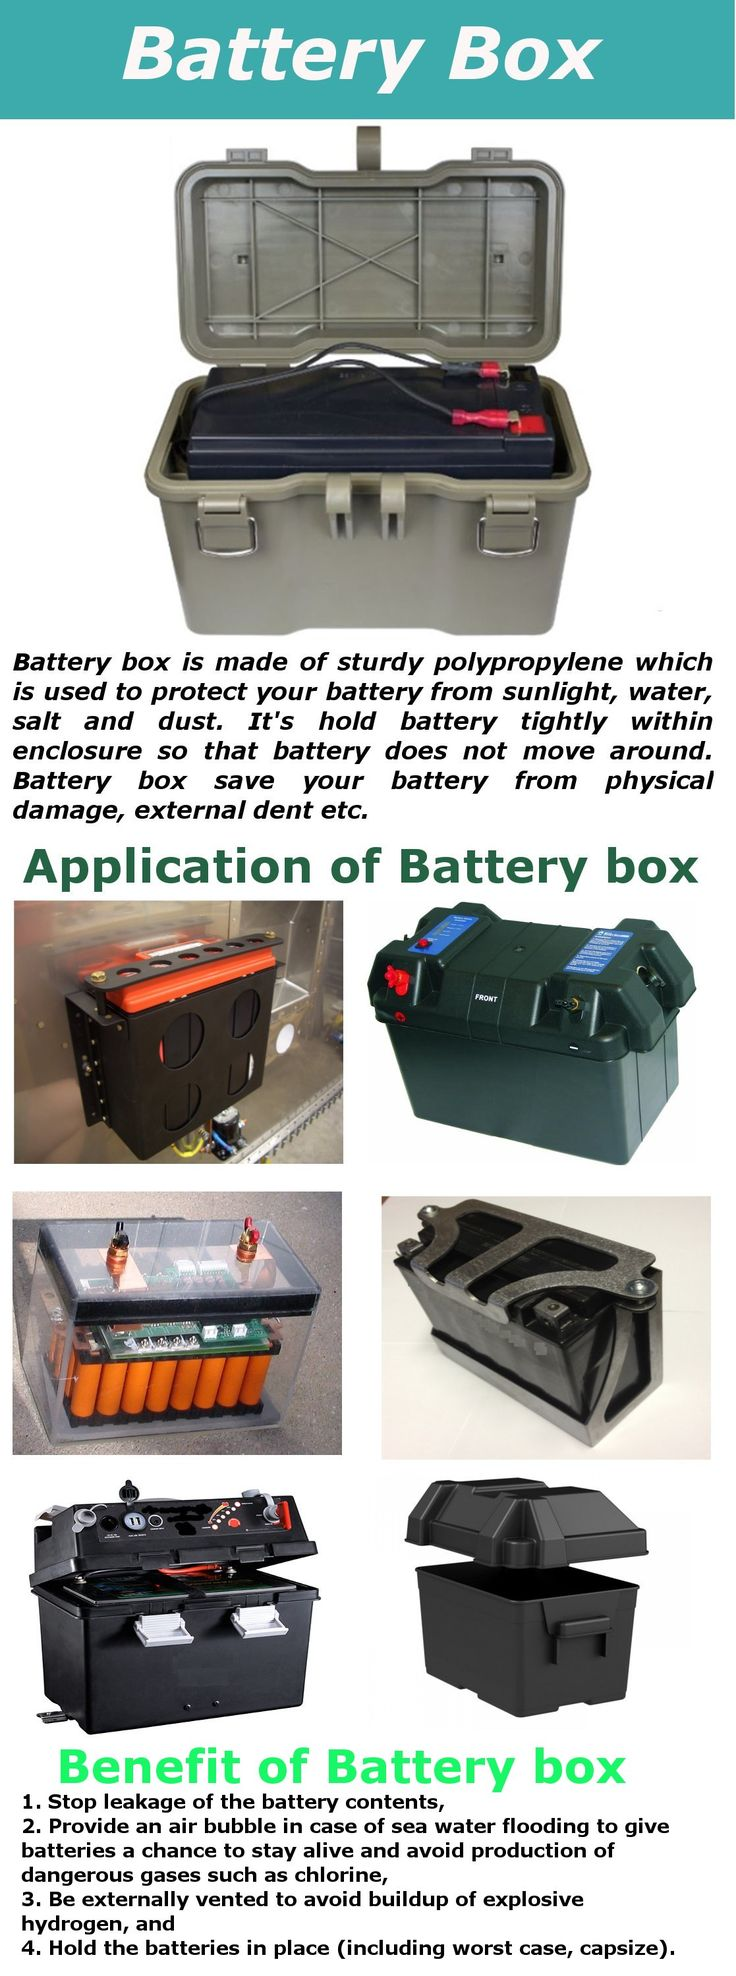 Business listings of battery box manufacturers, Indian manufacturing companies of battery box